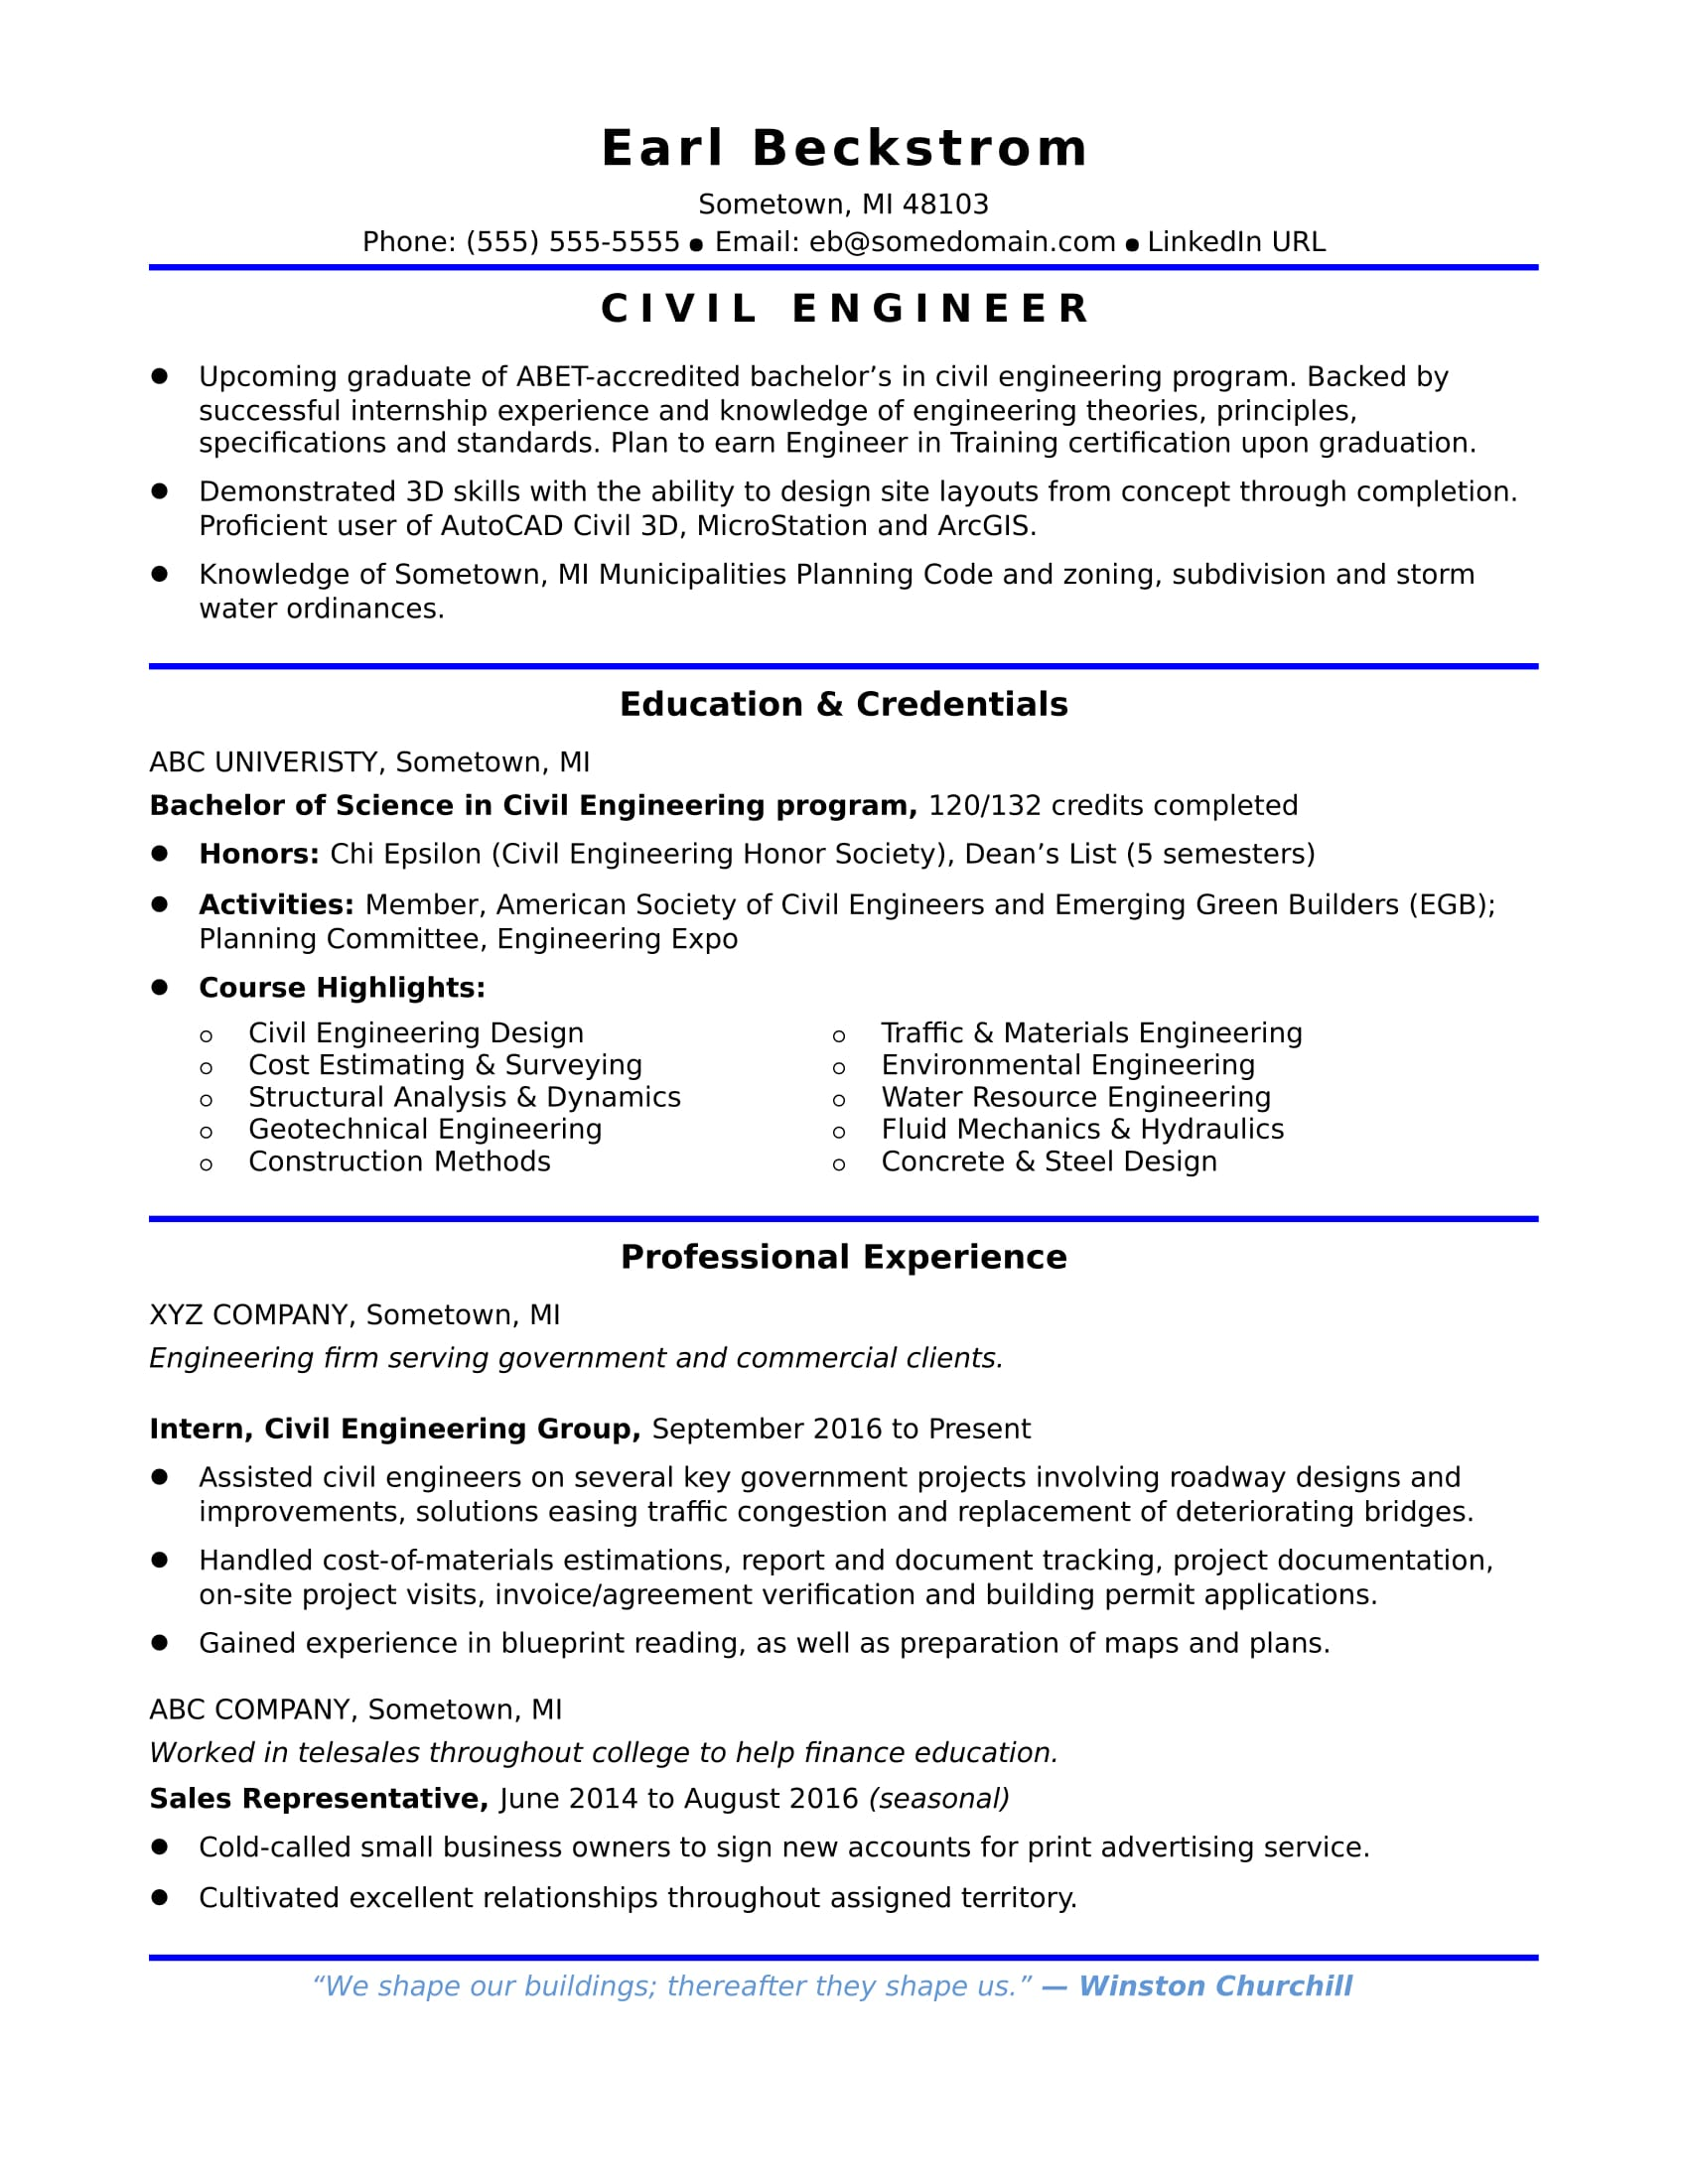 Sample Resume For An Entry Level Civil Engineer  Professional Engineer Resume